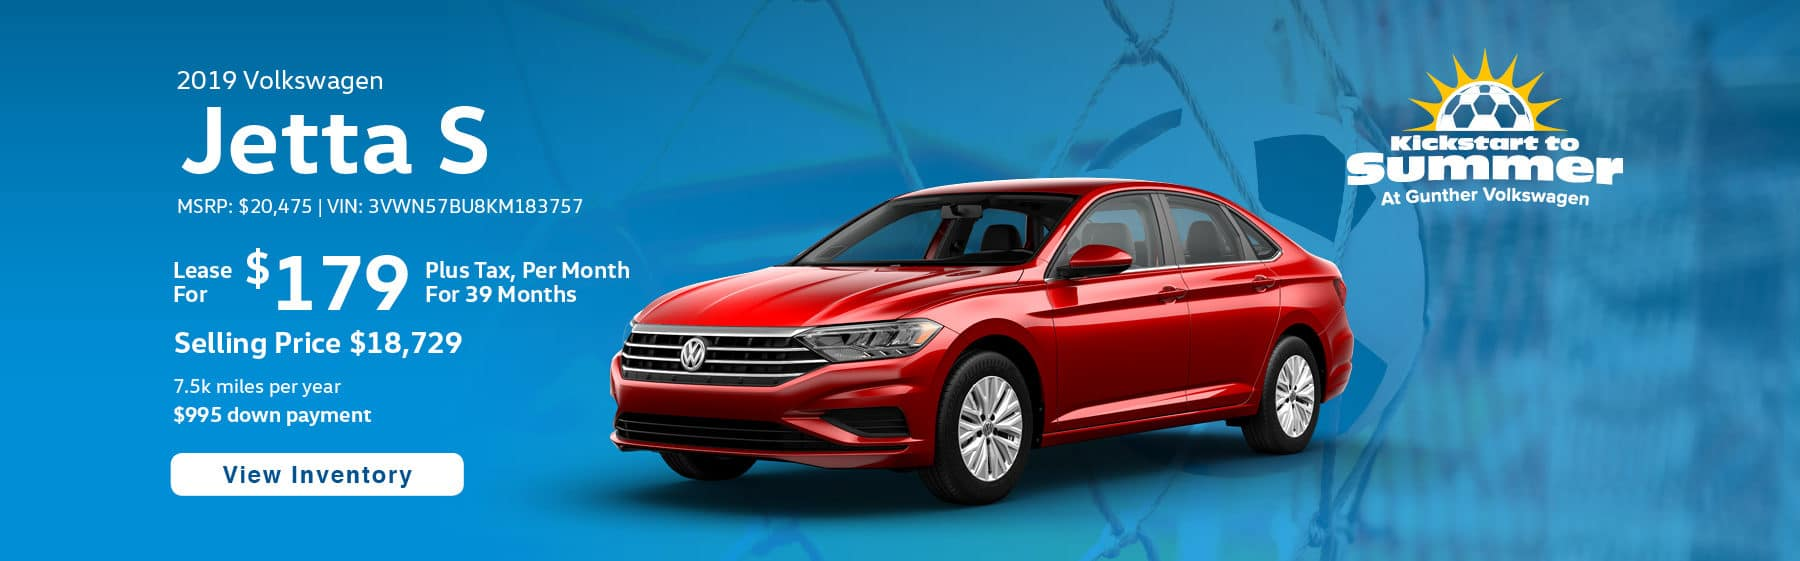 Lease the 2019 Jetta S for $179 per month, plus tax for 39 months.